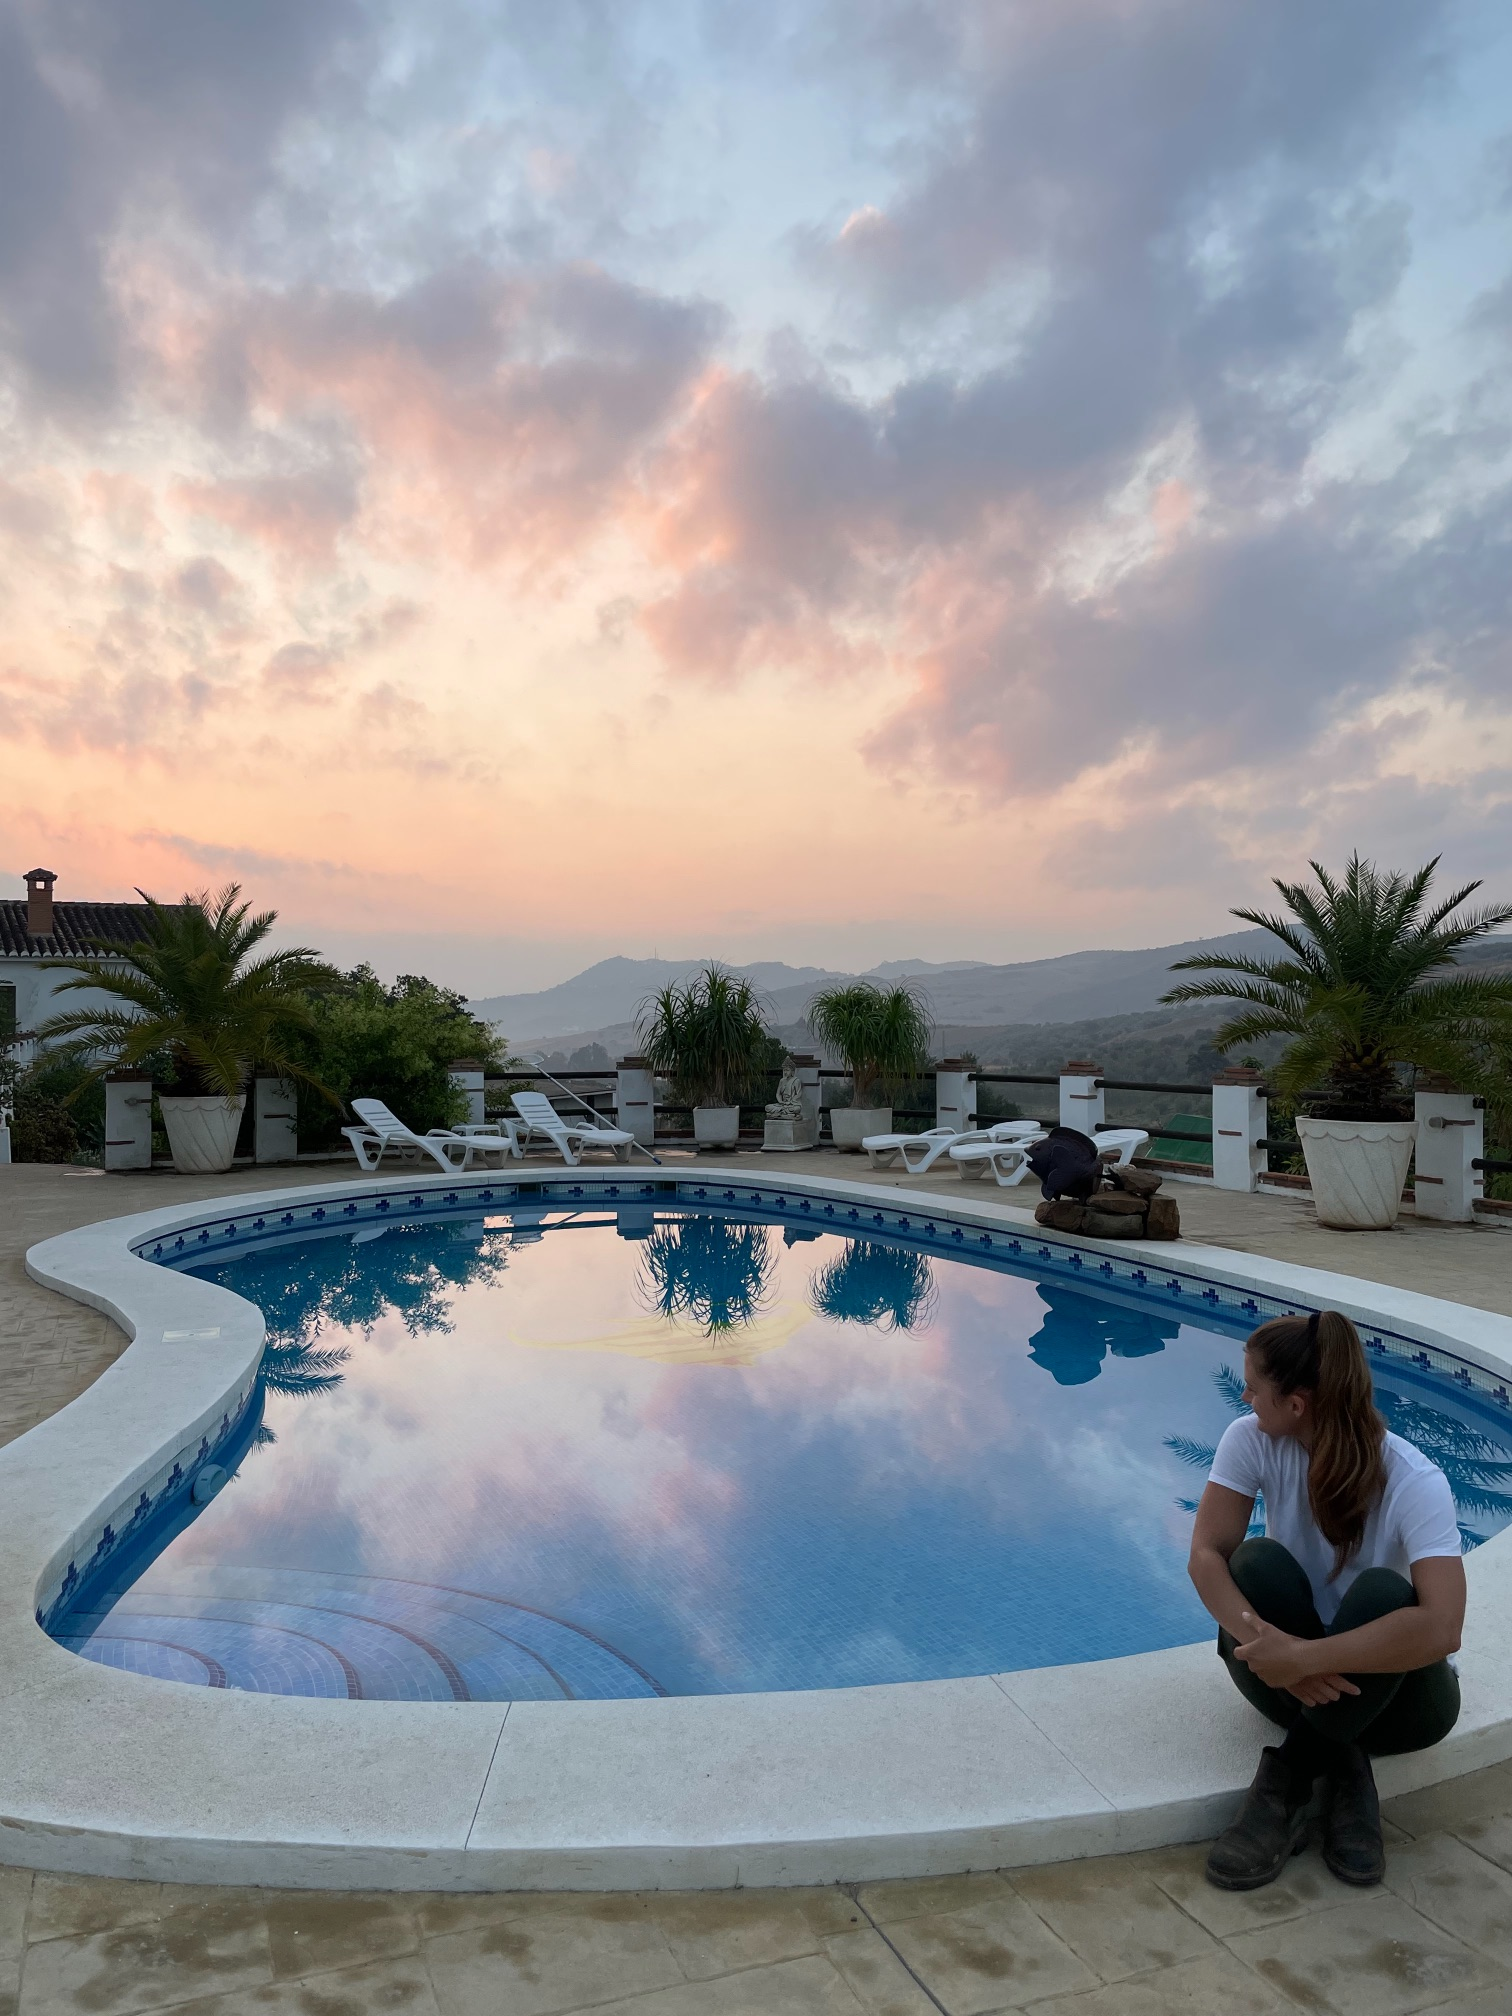 Sunrise at the pool at a horse riding holiday in andausia spain